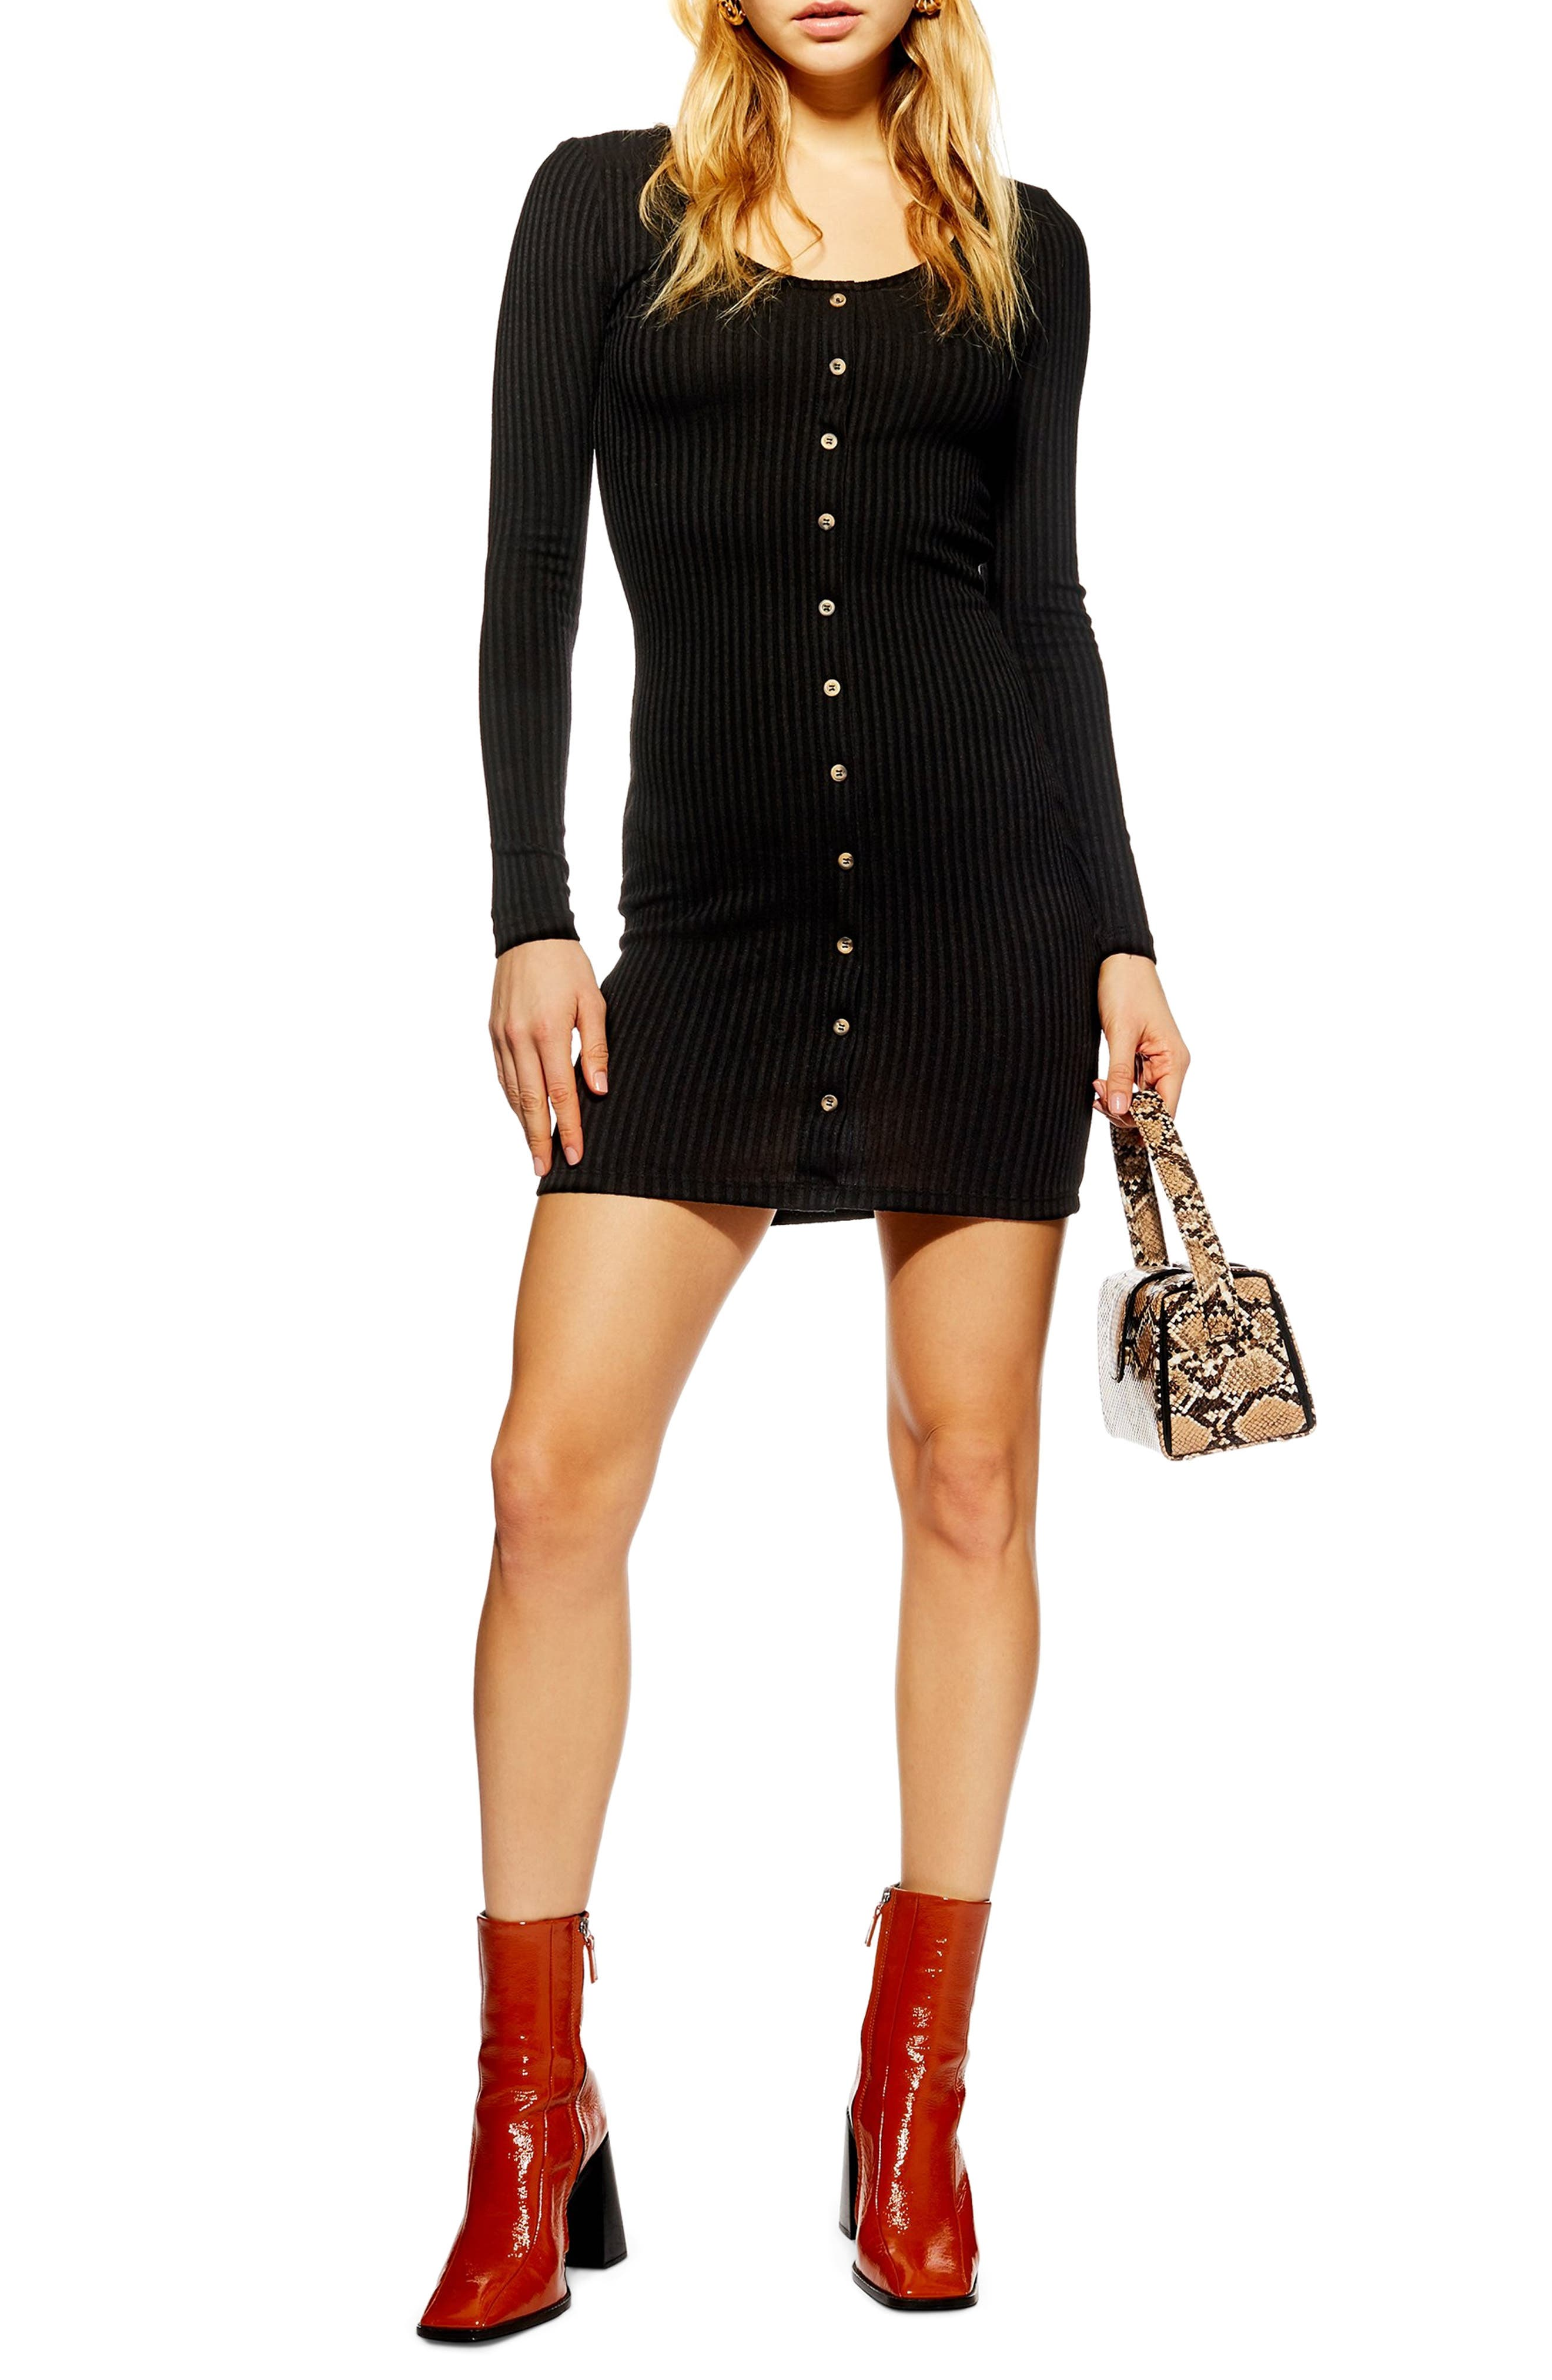 Topshop Ribbed Button Dress, US (fits like 0) - Black